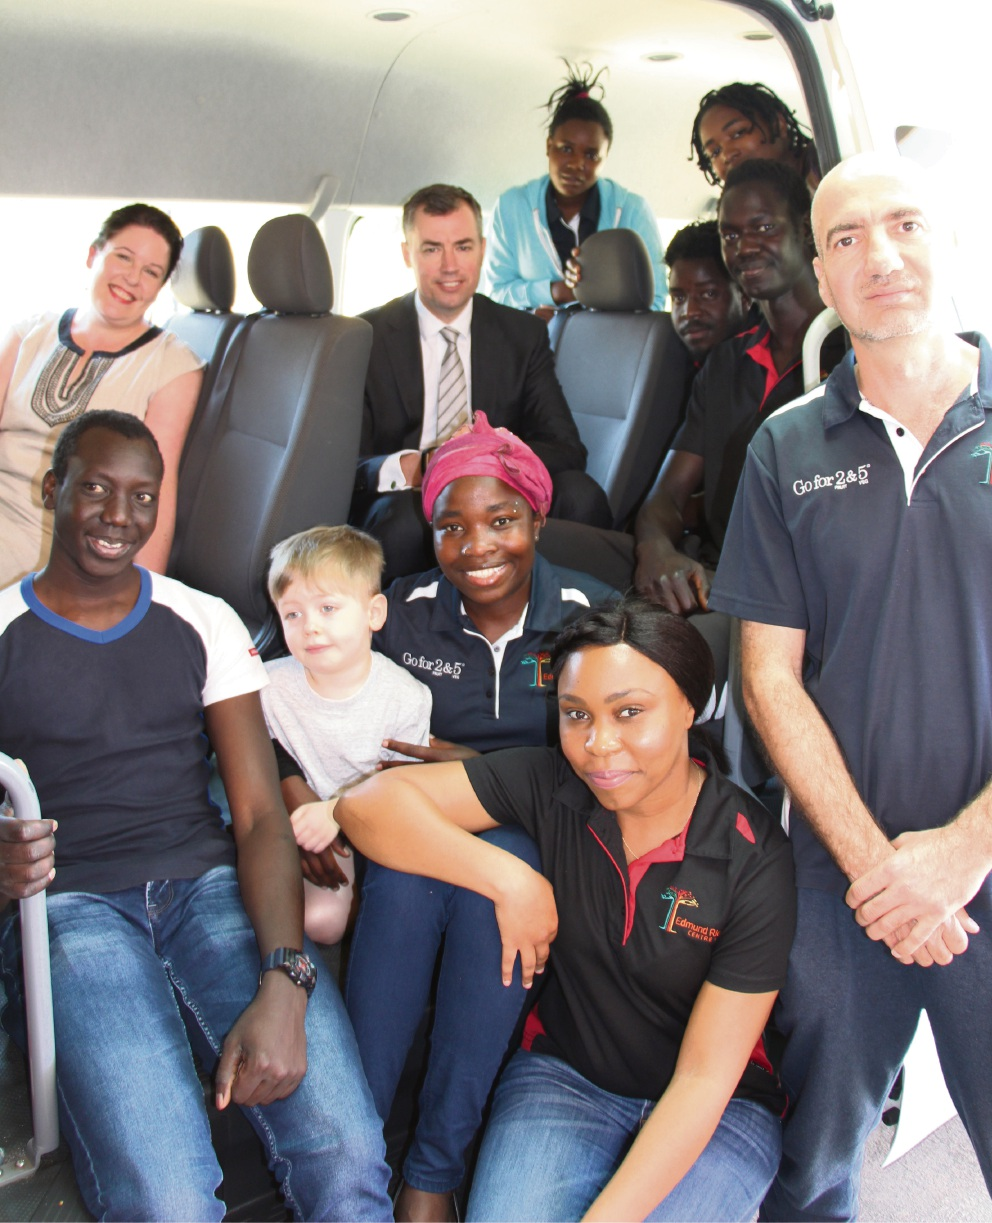 Stirling MHR Michael Keenan inside the bus with Edmund Rice Centre staff and youth leaders including Bella Ndayikeze (middle in the pink bandanna) who had to previously transport all of the players.